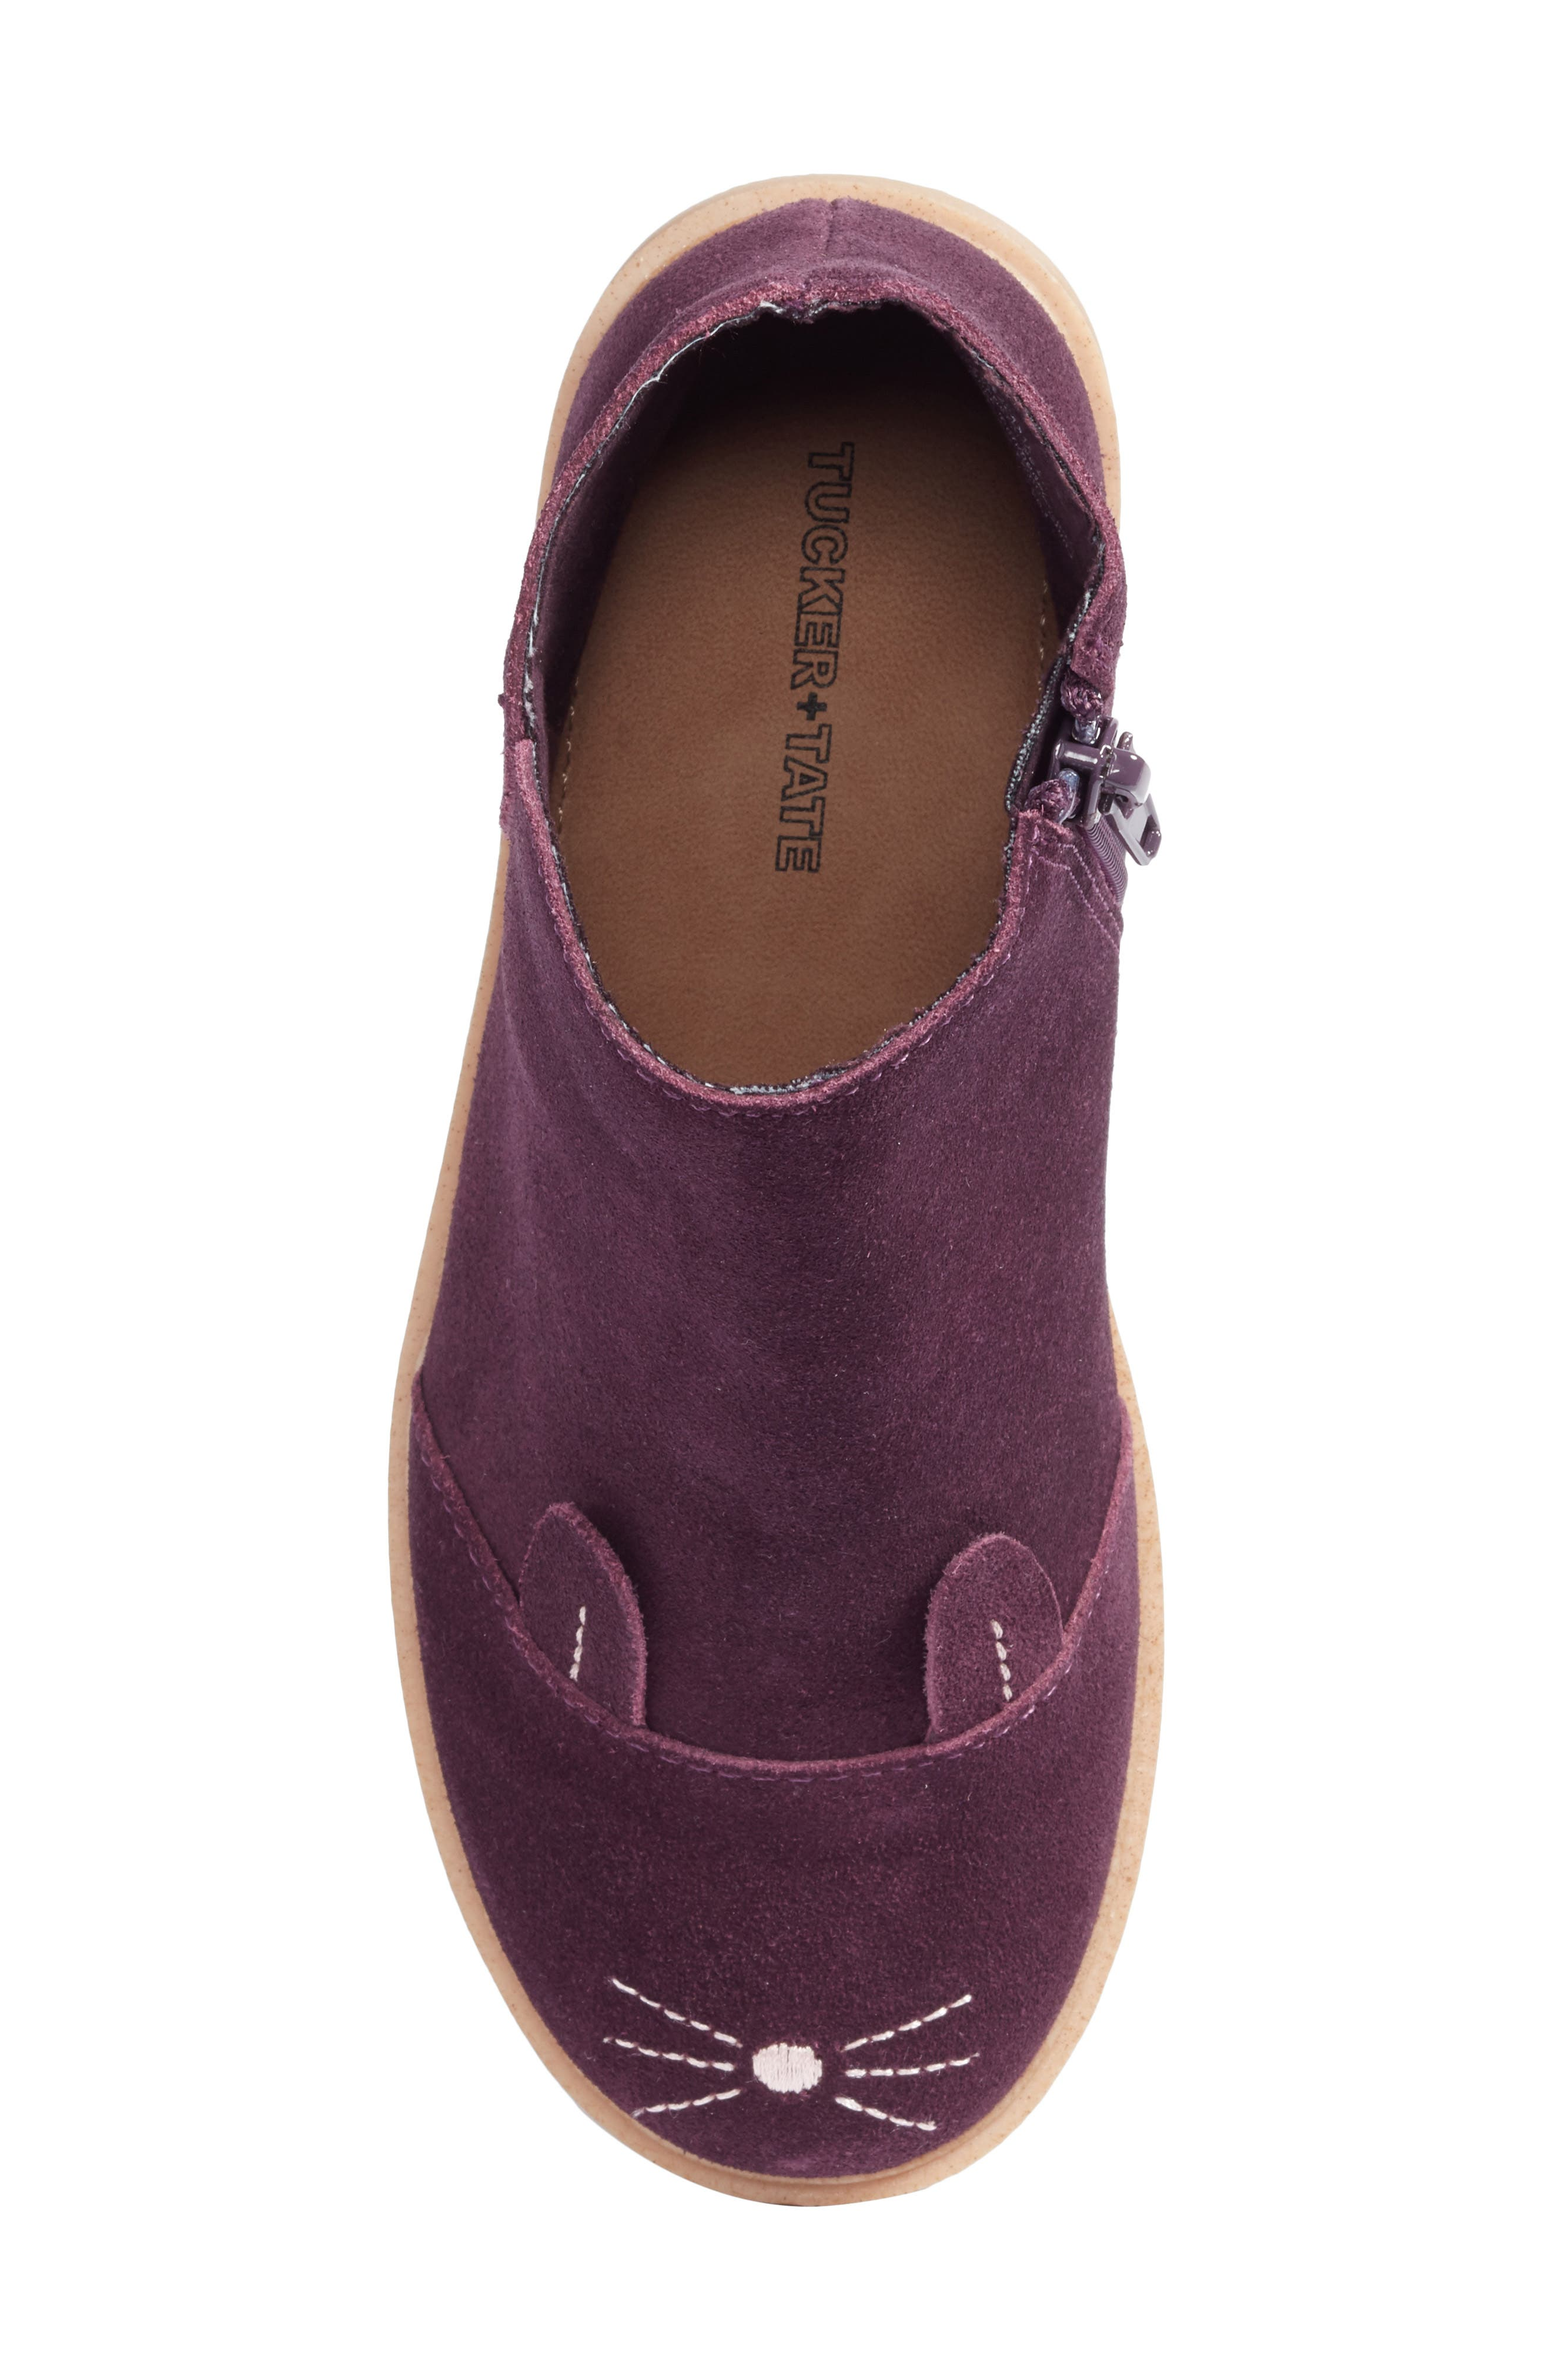 Bunny Boot,                             Alternate thumbnail 5, color,                             Berry Leather